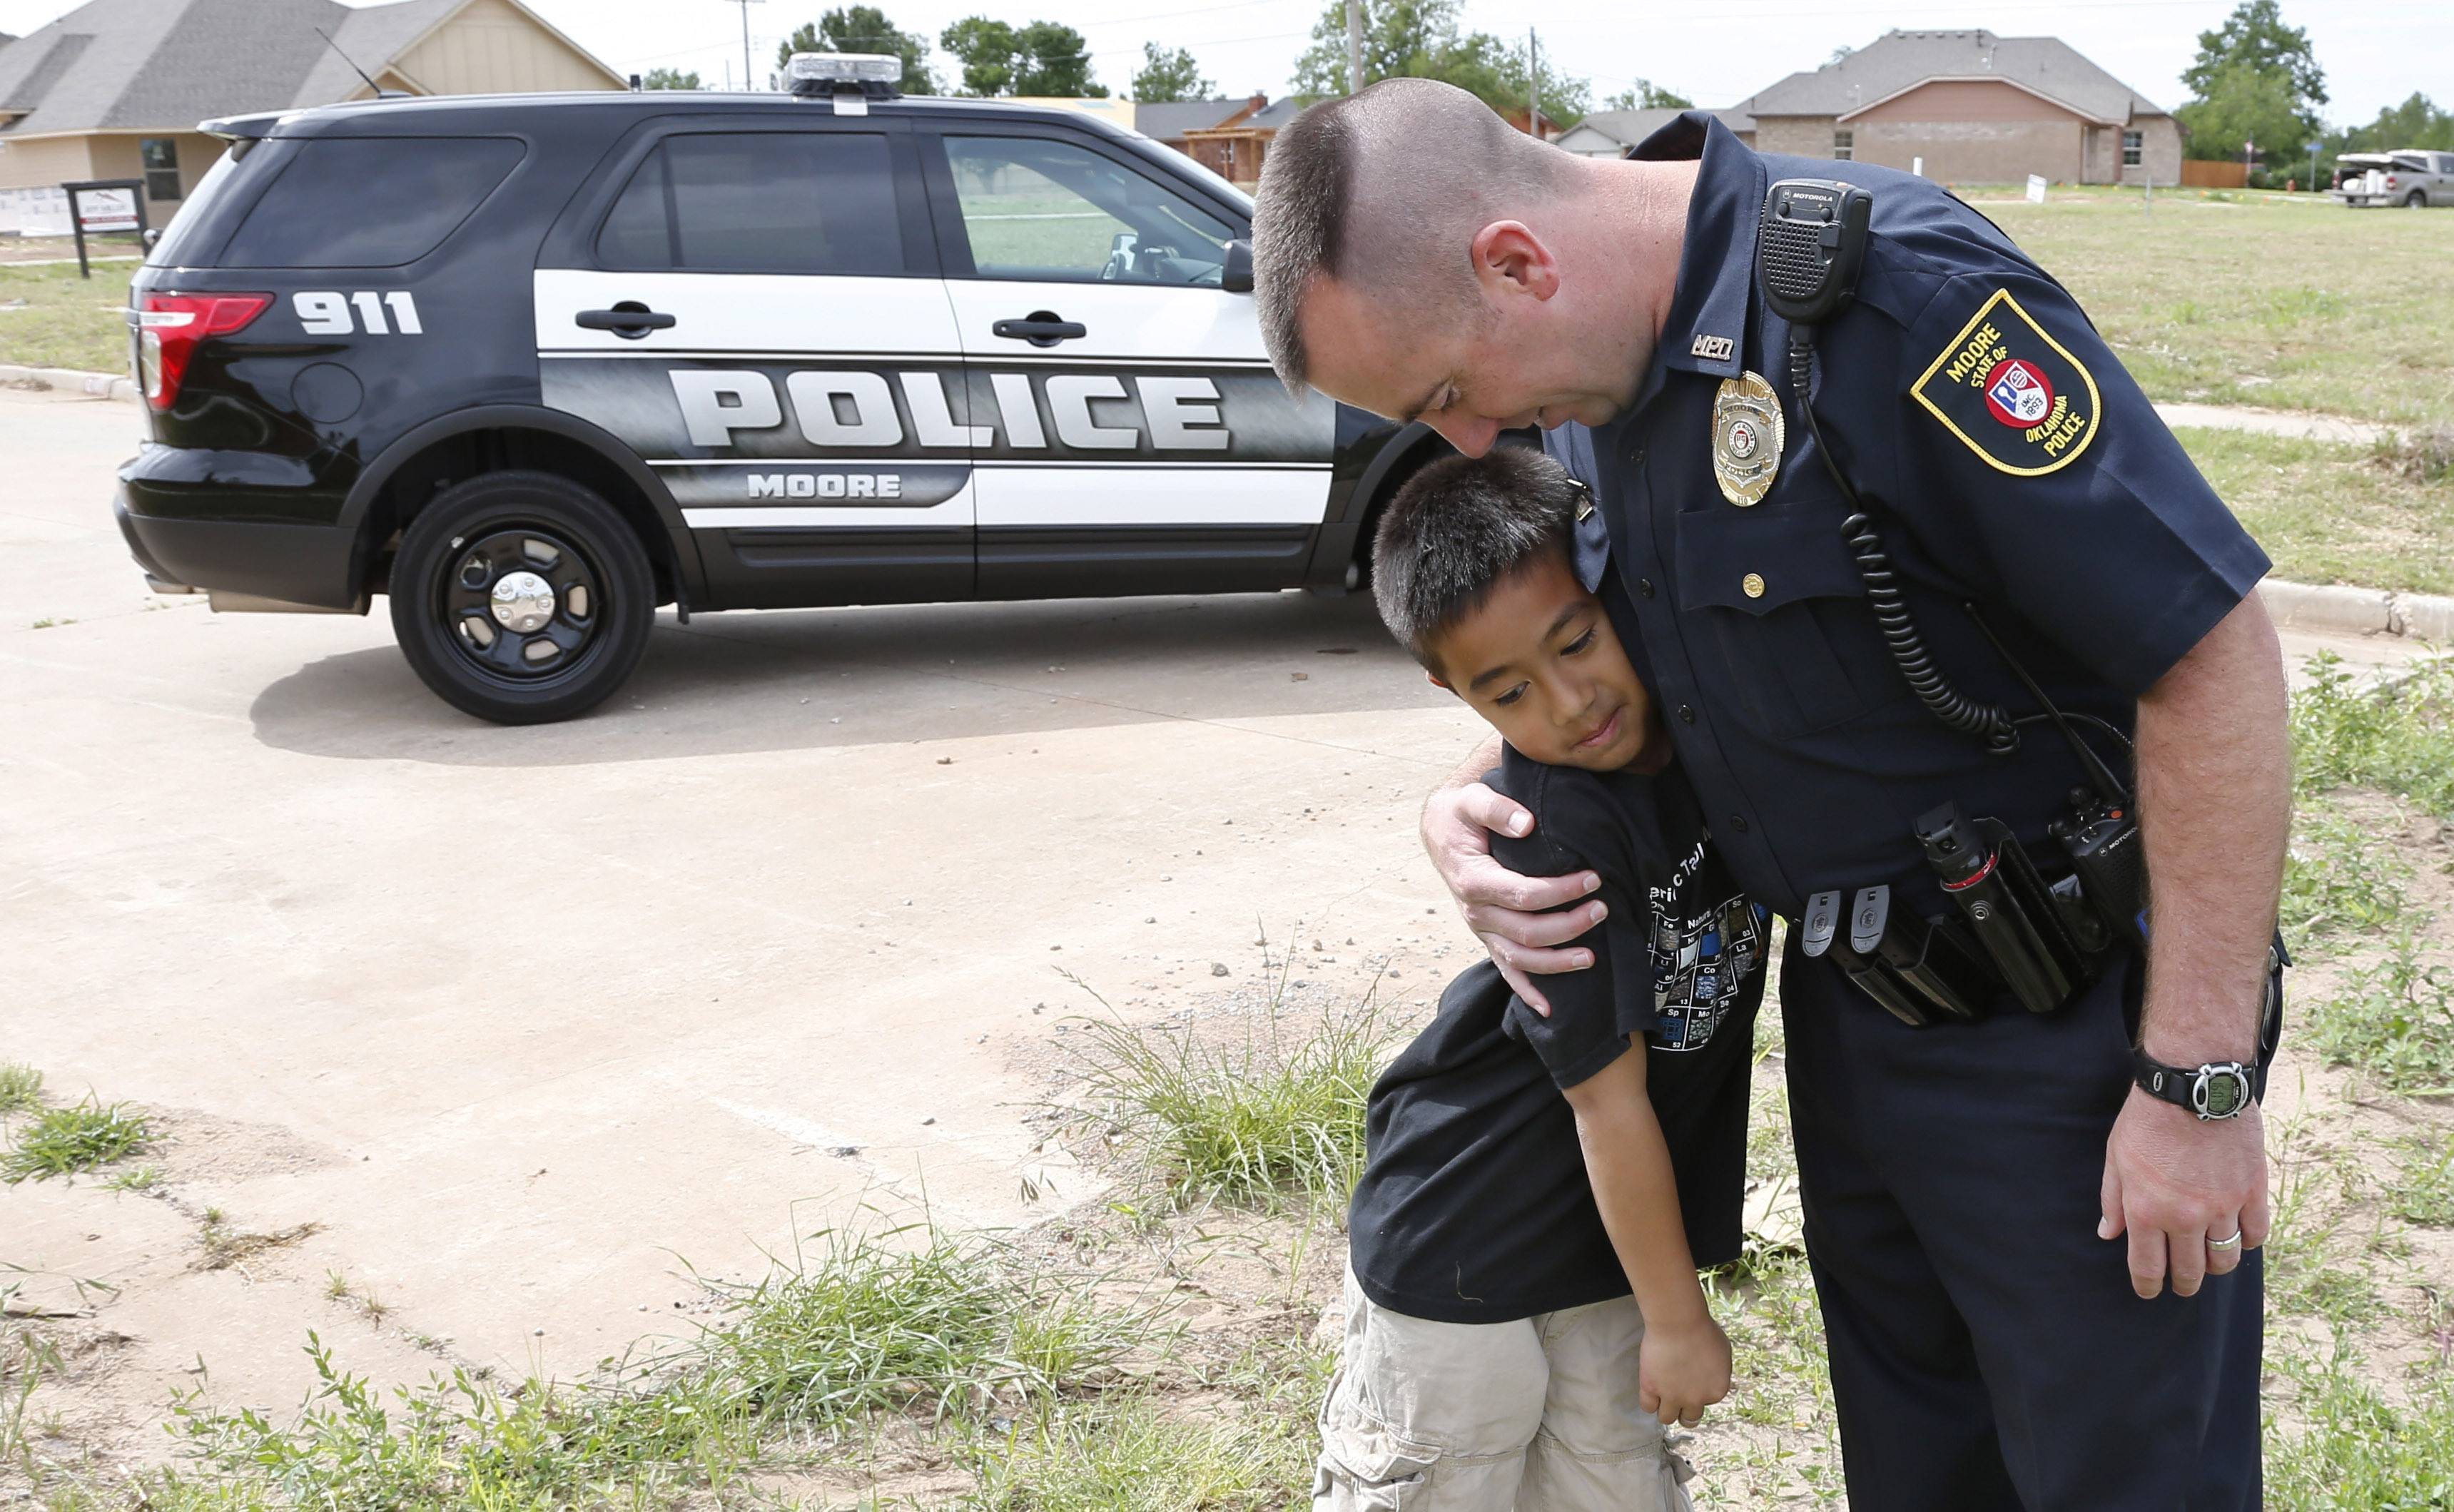 Moore police officer Travis Muehlenweg, right, hugs 10-year-old Kai Heuangpraseuth, after they met outside the new Plaza Towers Elementary school. Muehlenweg was photographed with Heuangpraseuth as he helped pull him from the rubble of Plaza Towers Elementary school following the 2013 tornado.